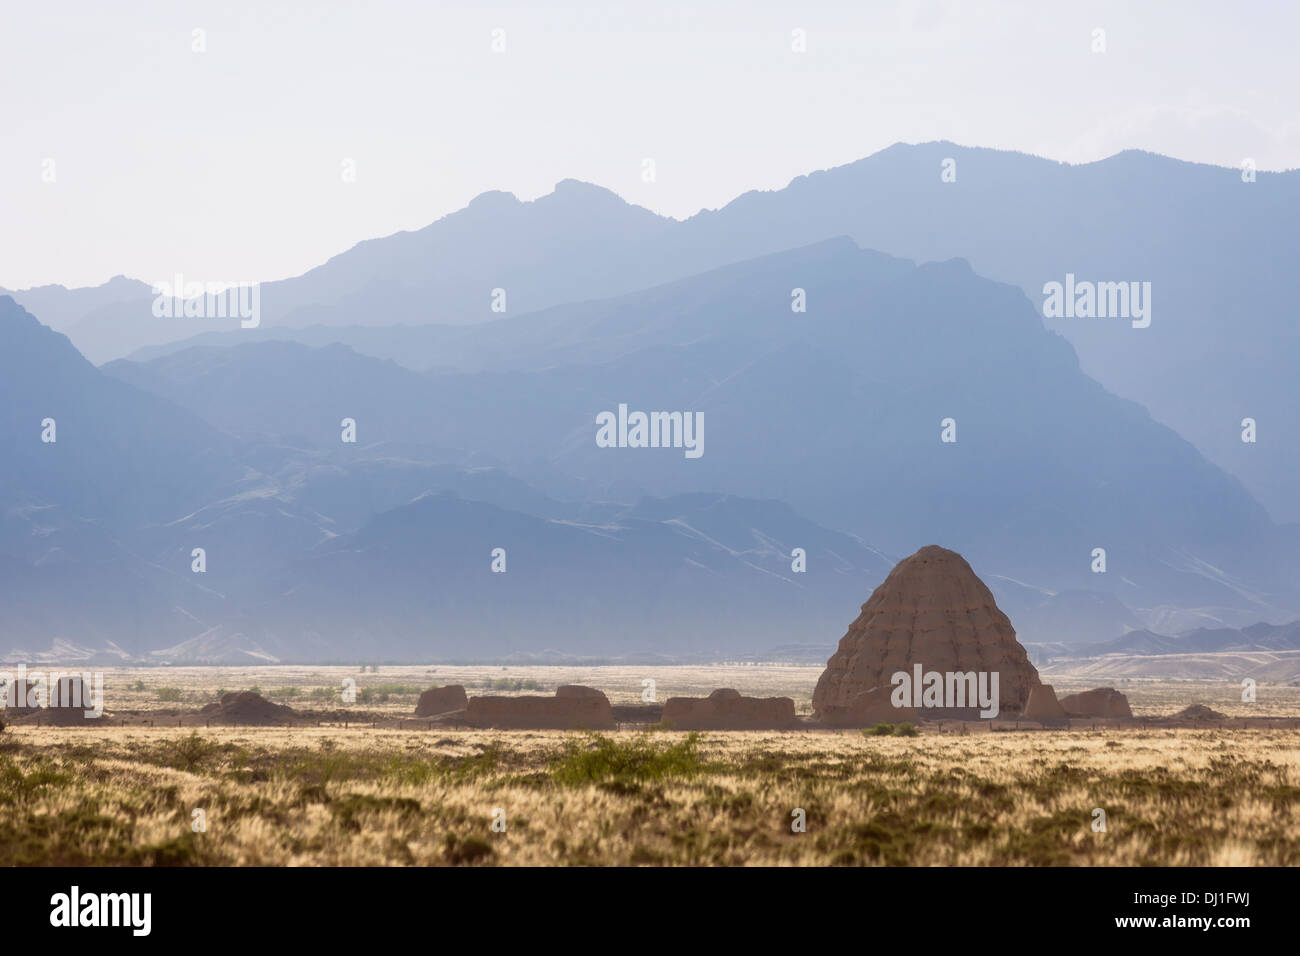 Xixia Imperial Tombs, Helan mountains, scenery in China Stock Photo